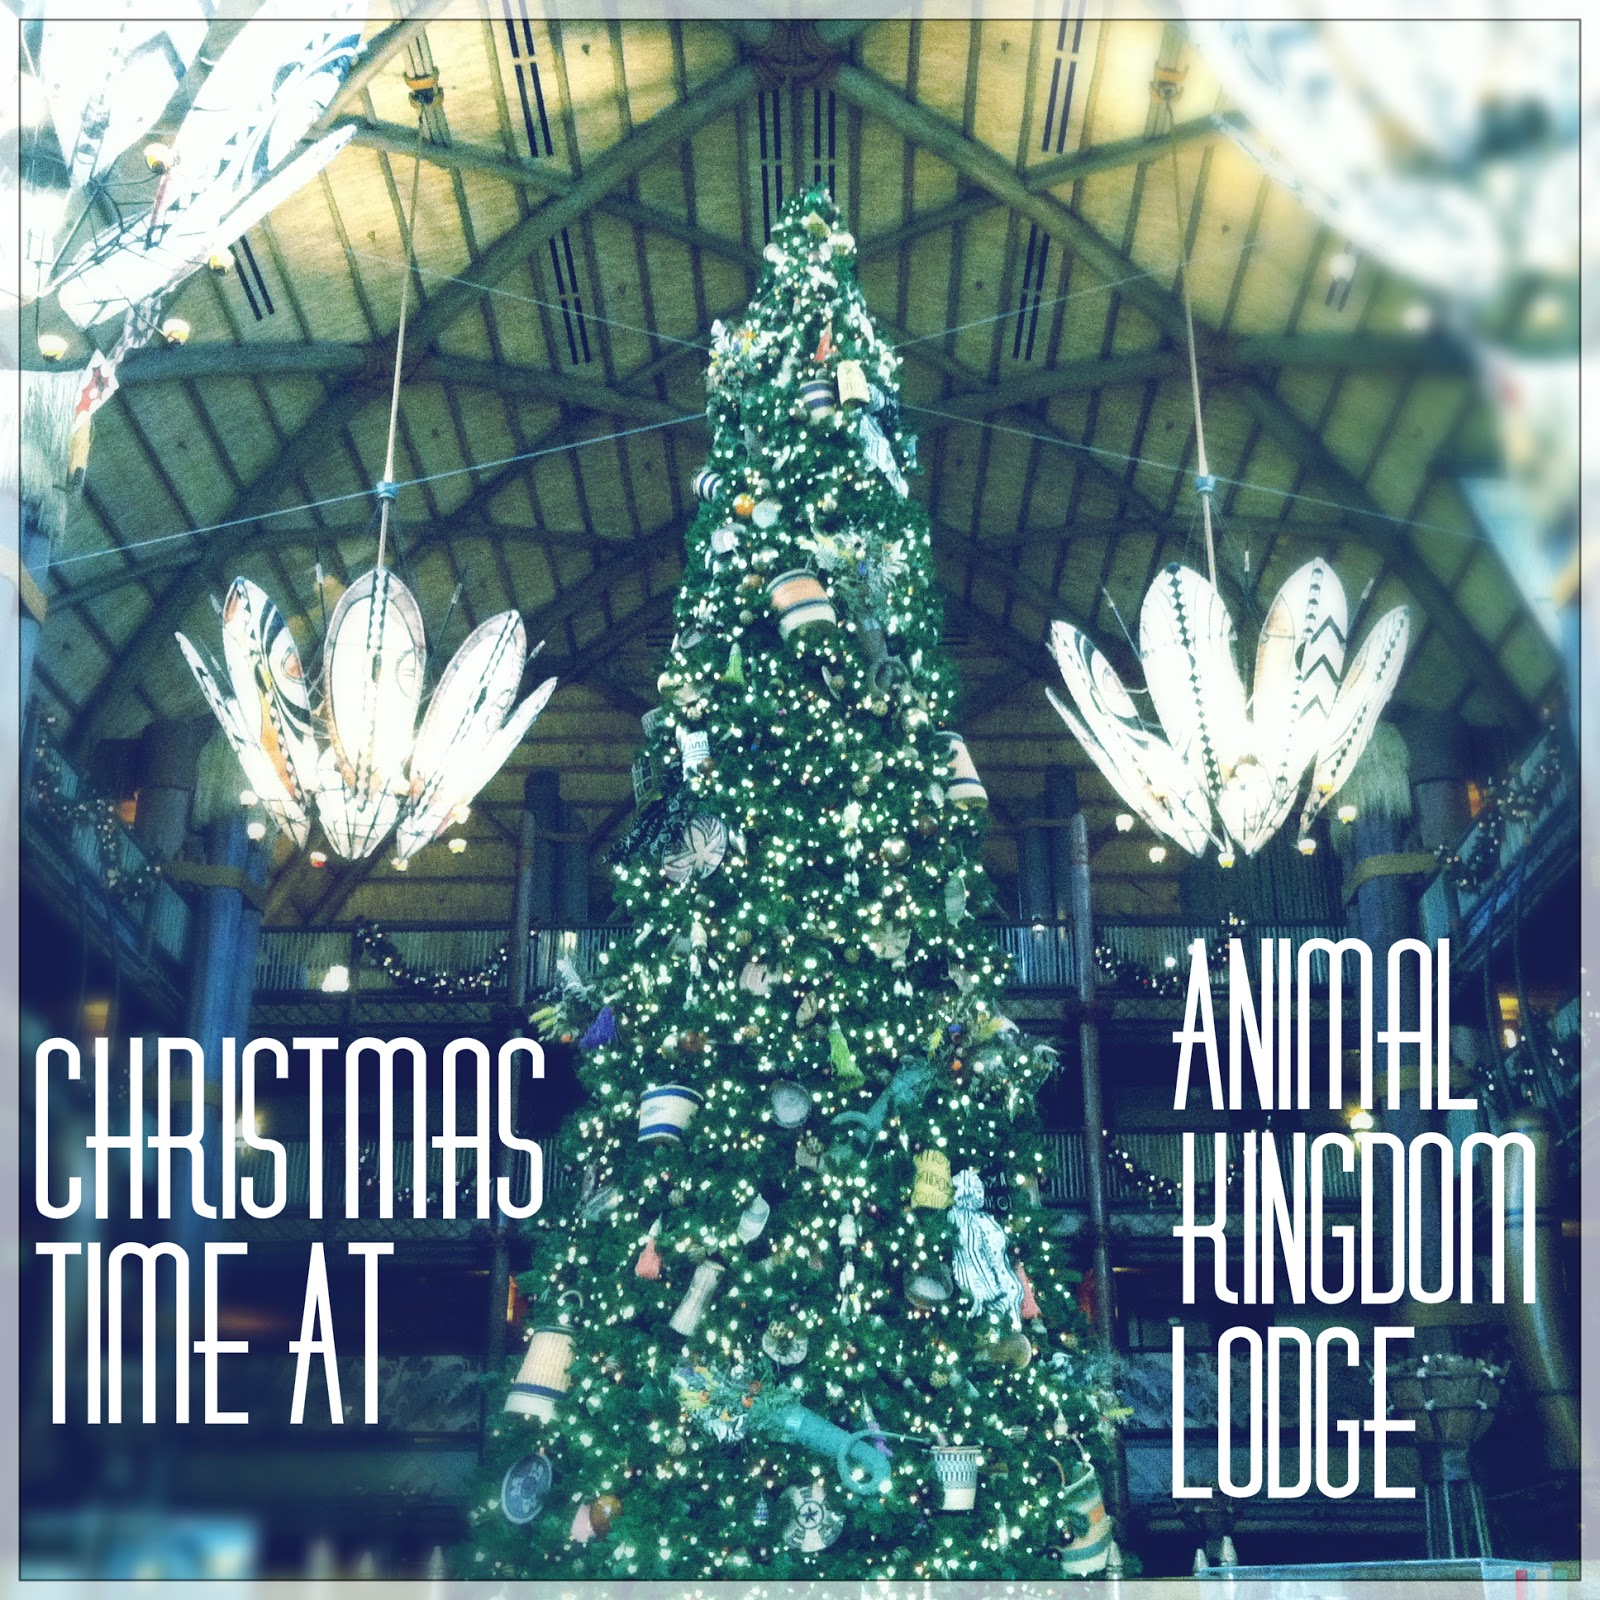 the entire animal kingdom lodge christmas music loop this loop is immensely heart warming and puts me in the holiday spiritin the weirdest way ever - Disney Christmas Music